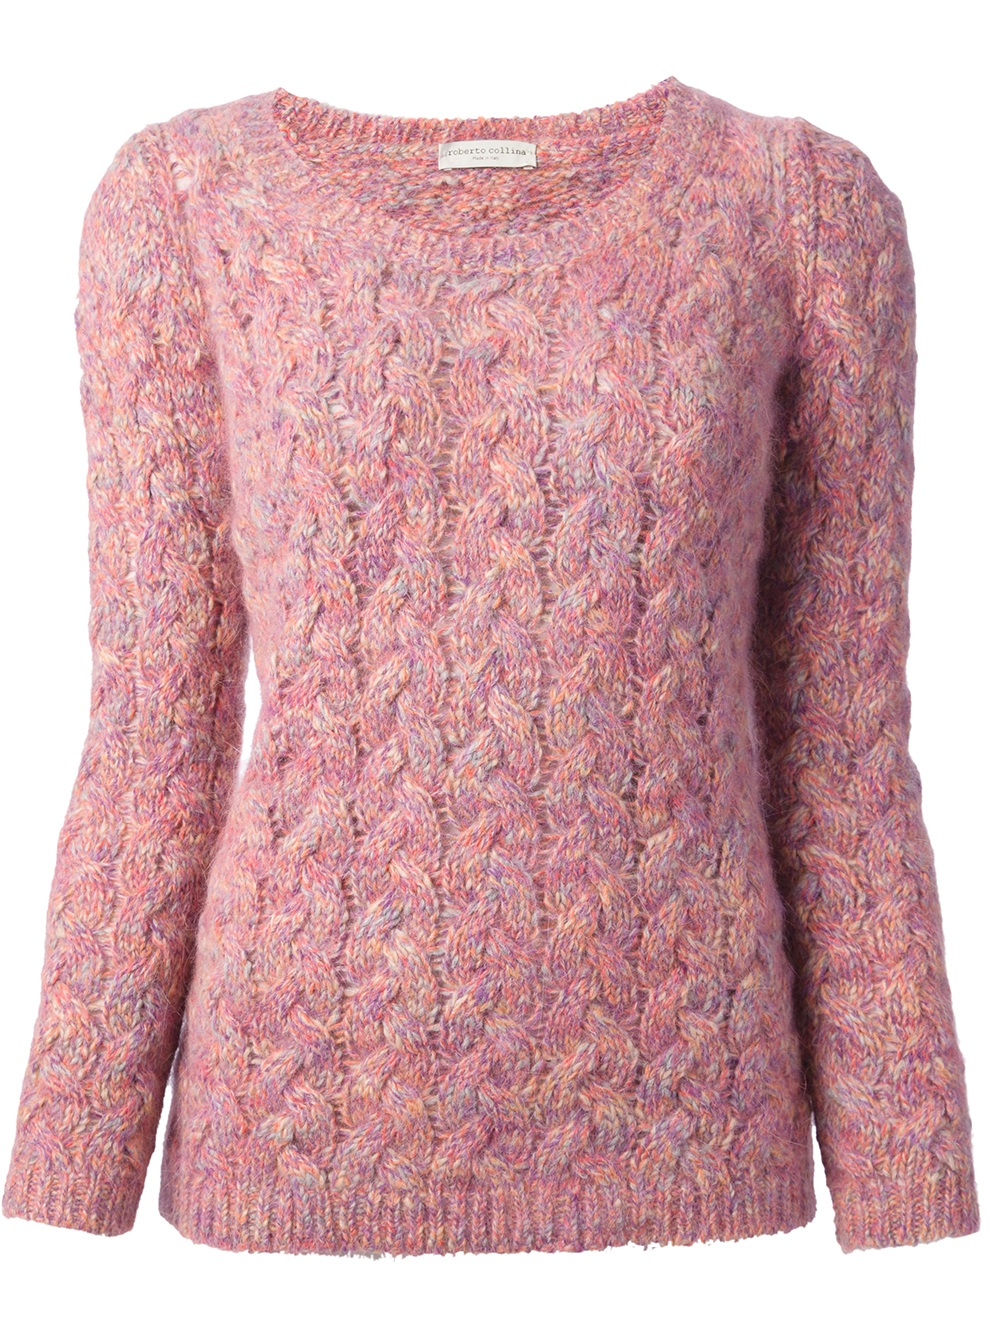 Roberto collina Cable Knit Sweater in Pink | Lyst